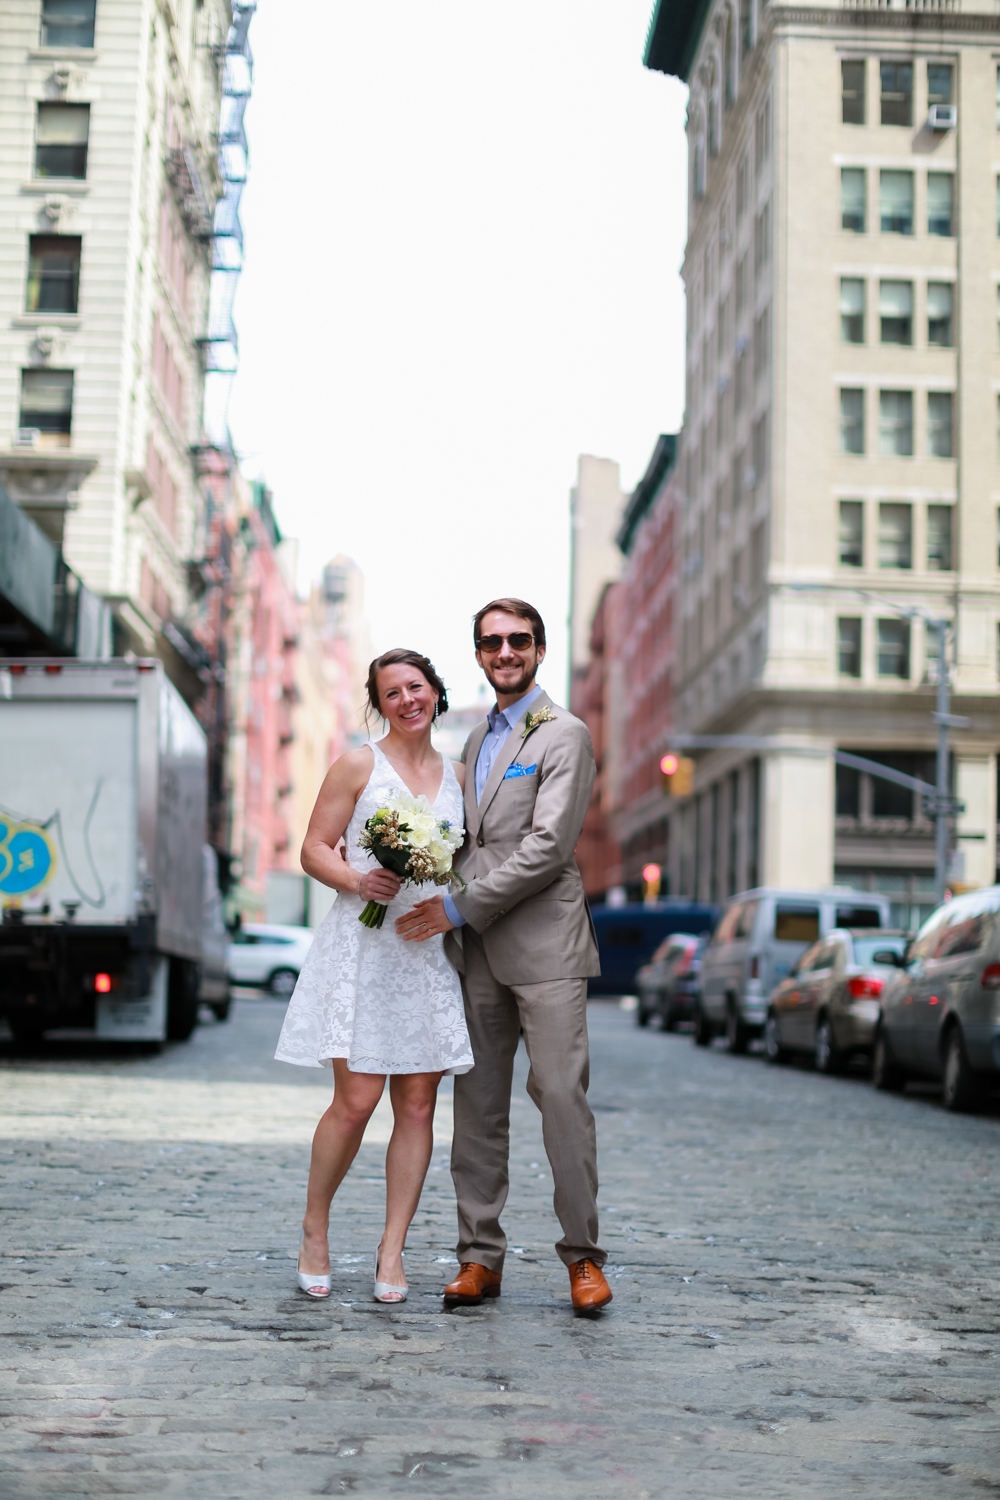 Bride and groom on the streets of New York City